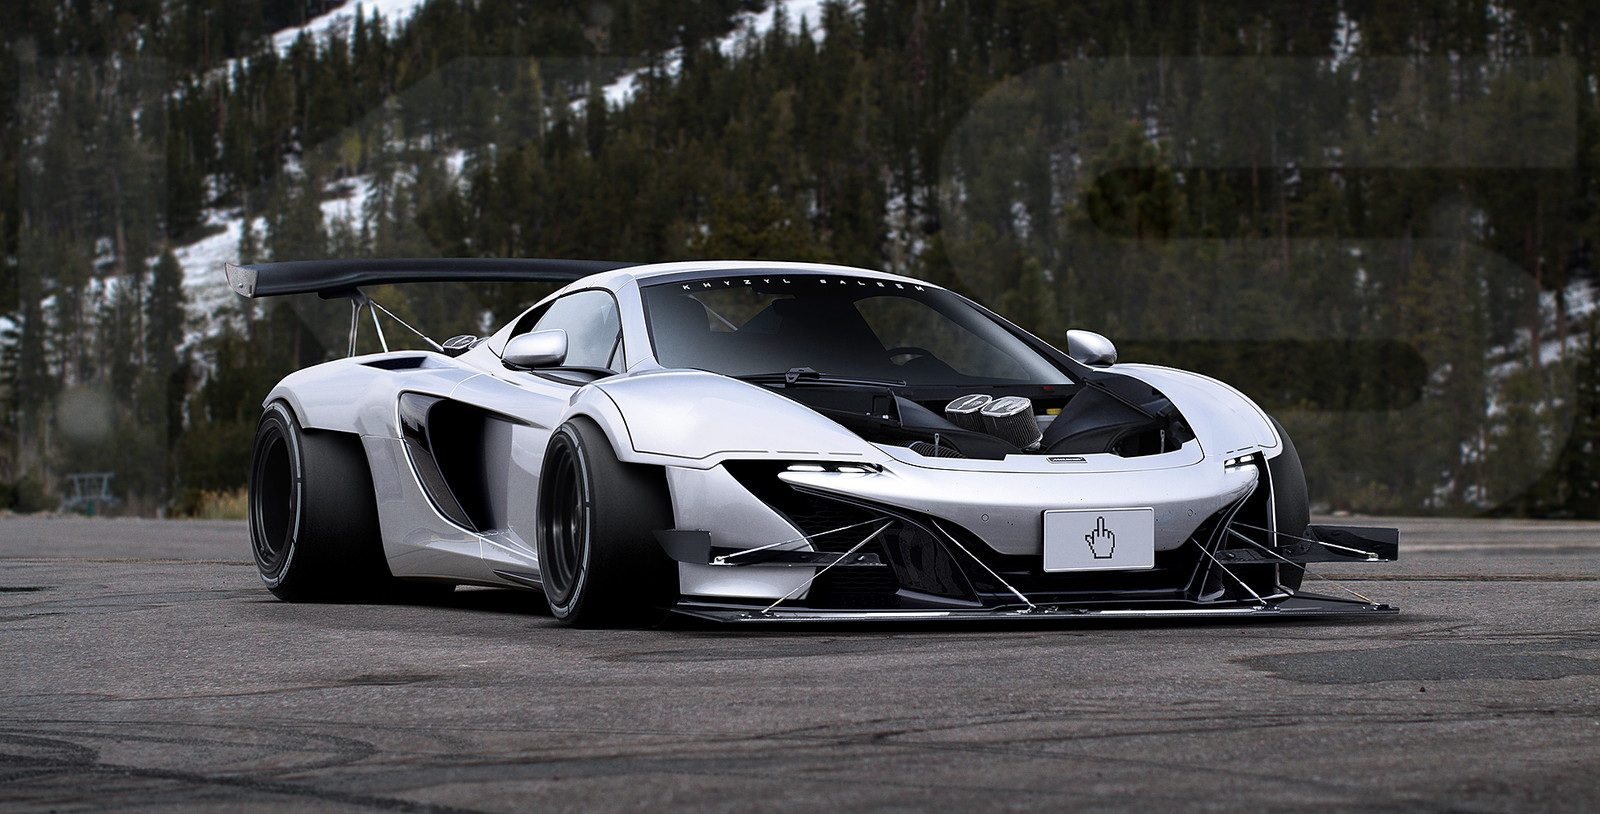 Twin-Engined - 8 Rotor Mclaren 650s